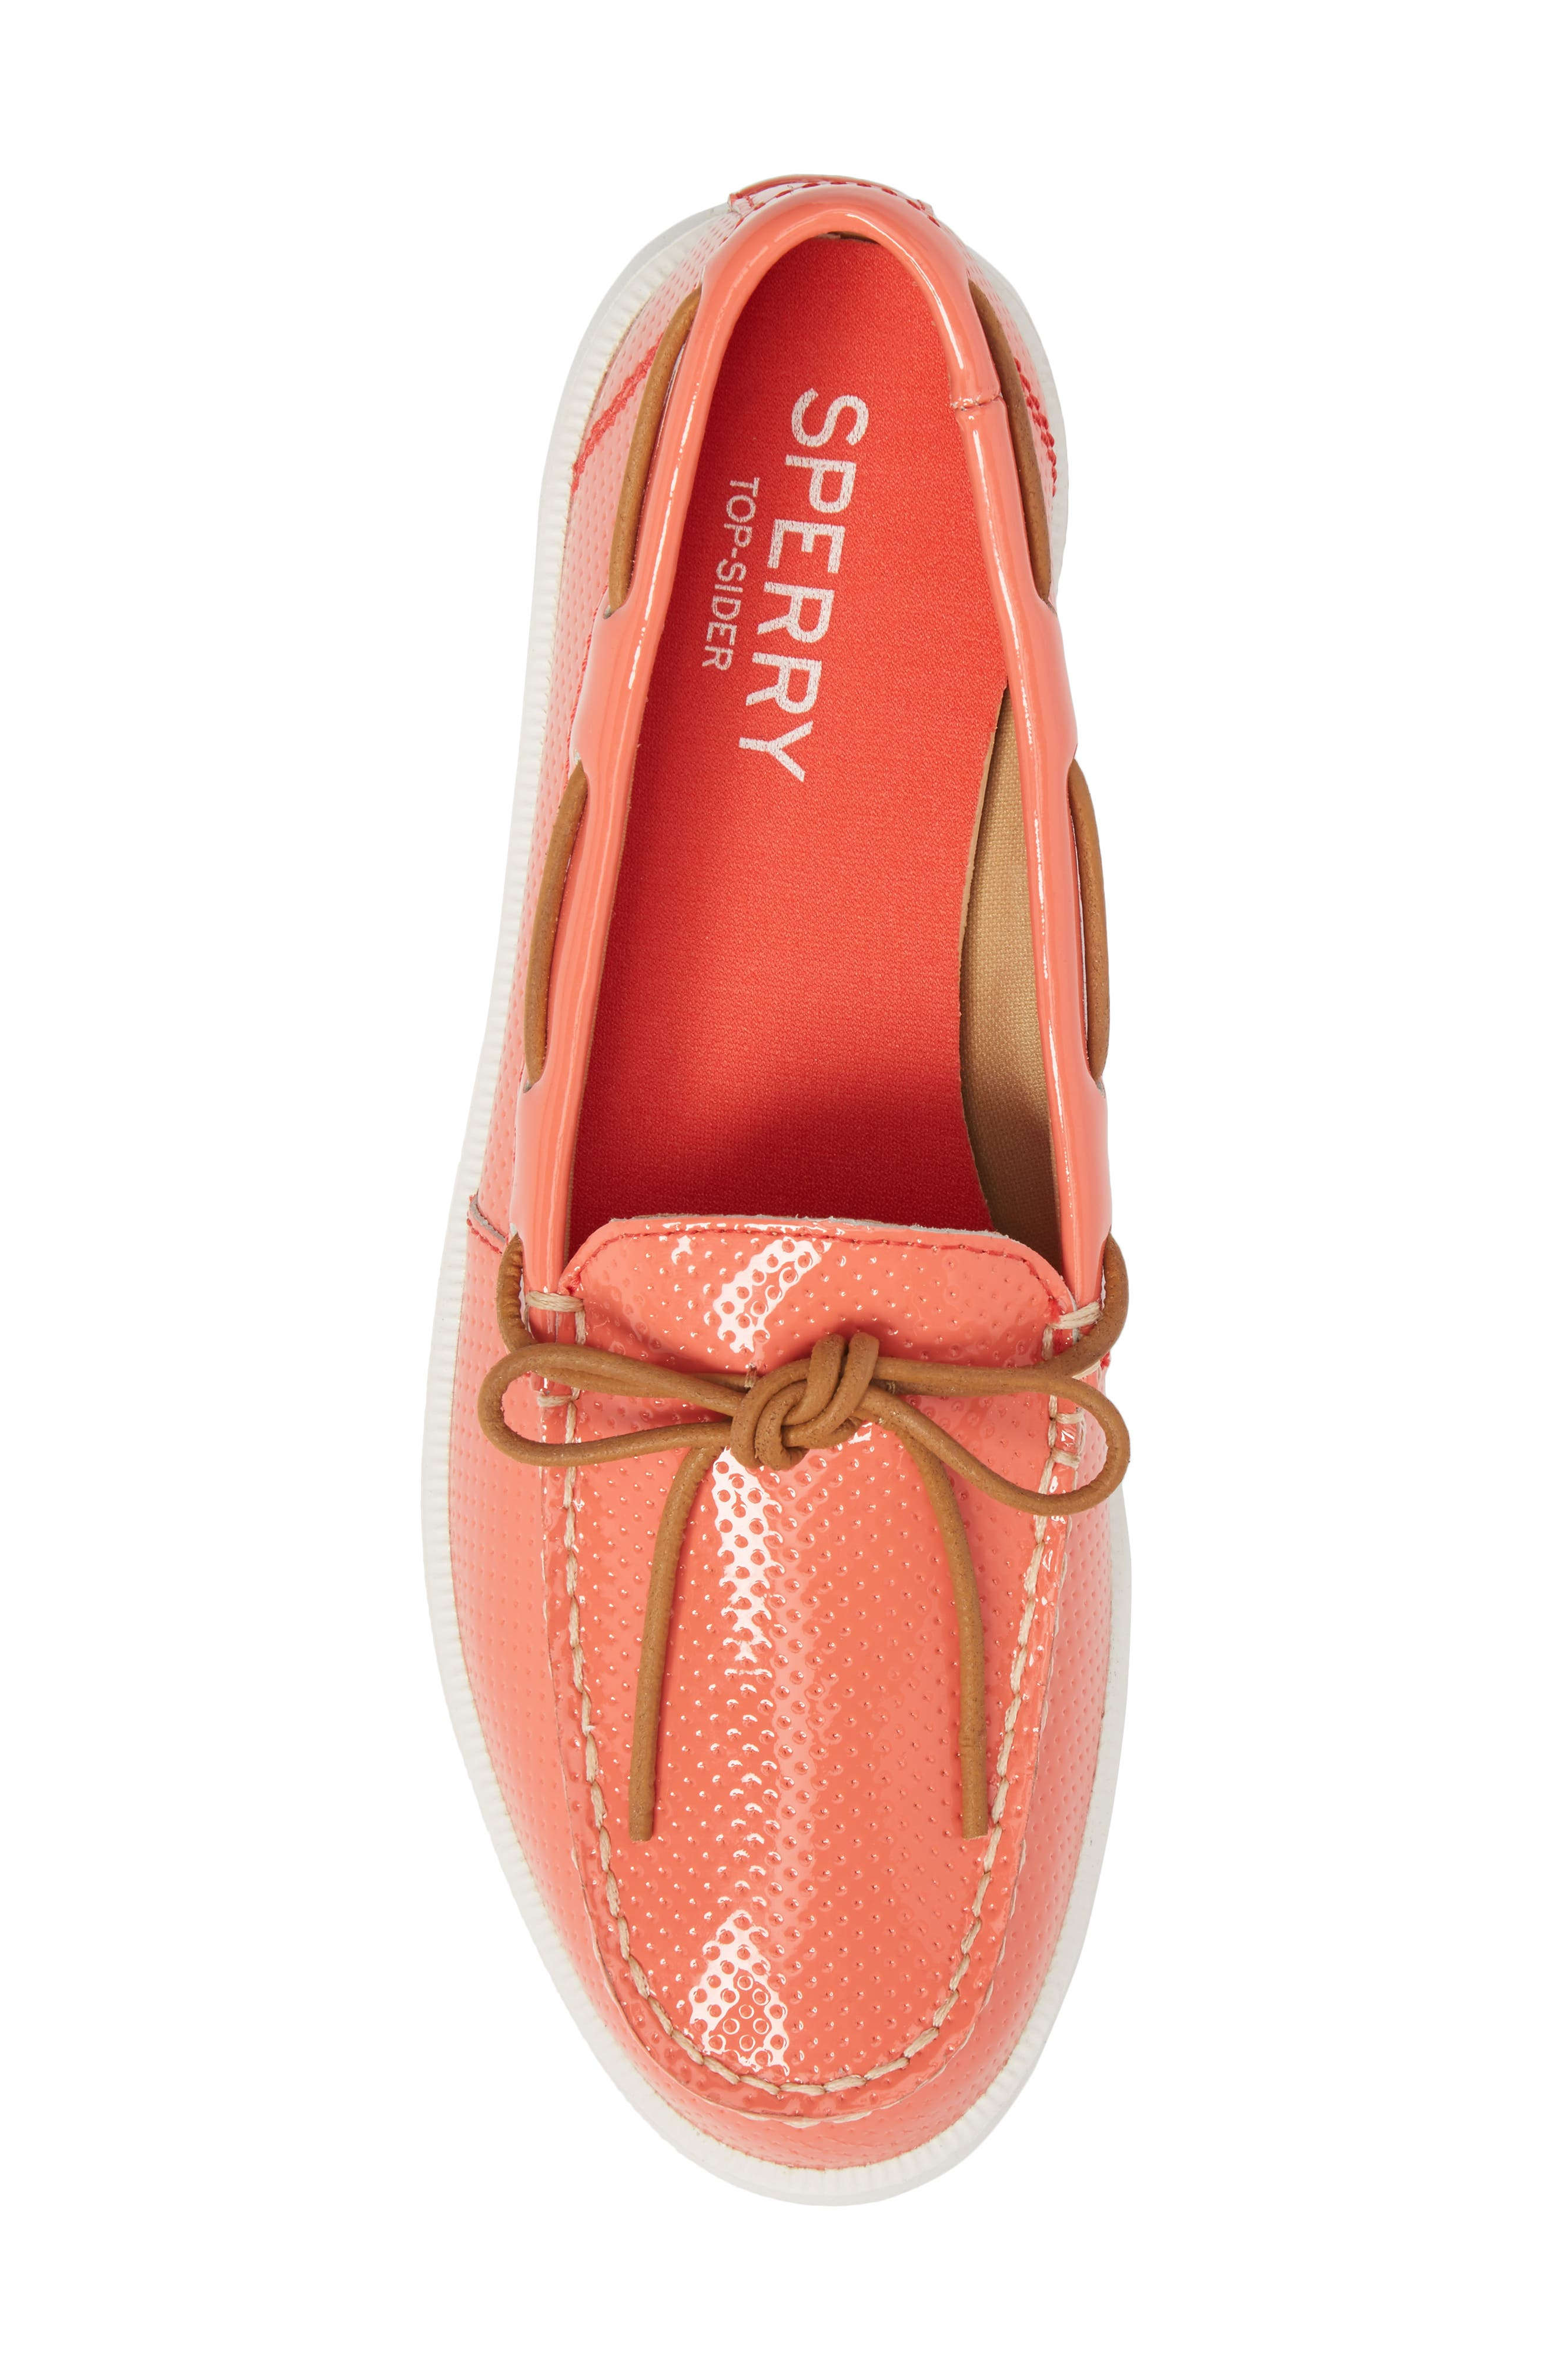 Oasis Boat Shoe,                             Alternate thumbnail 5, color,                             Coral Patent Leather